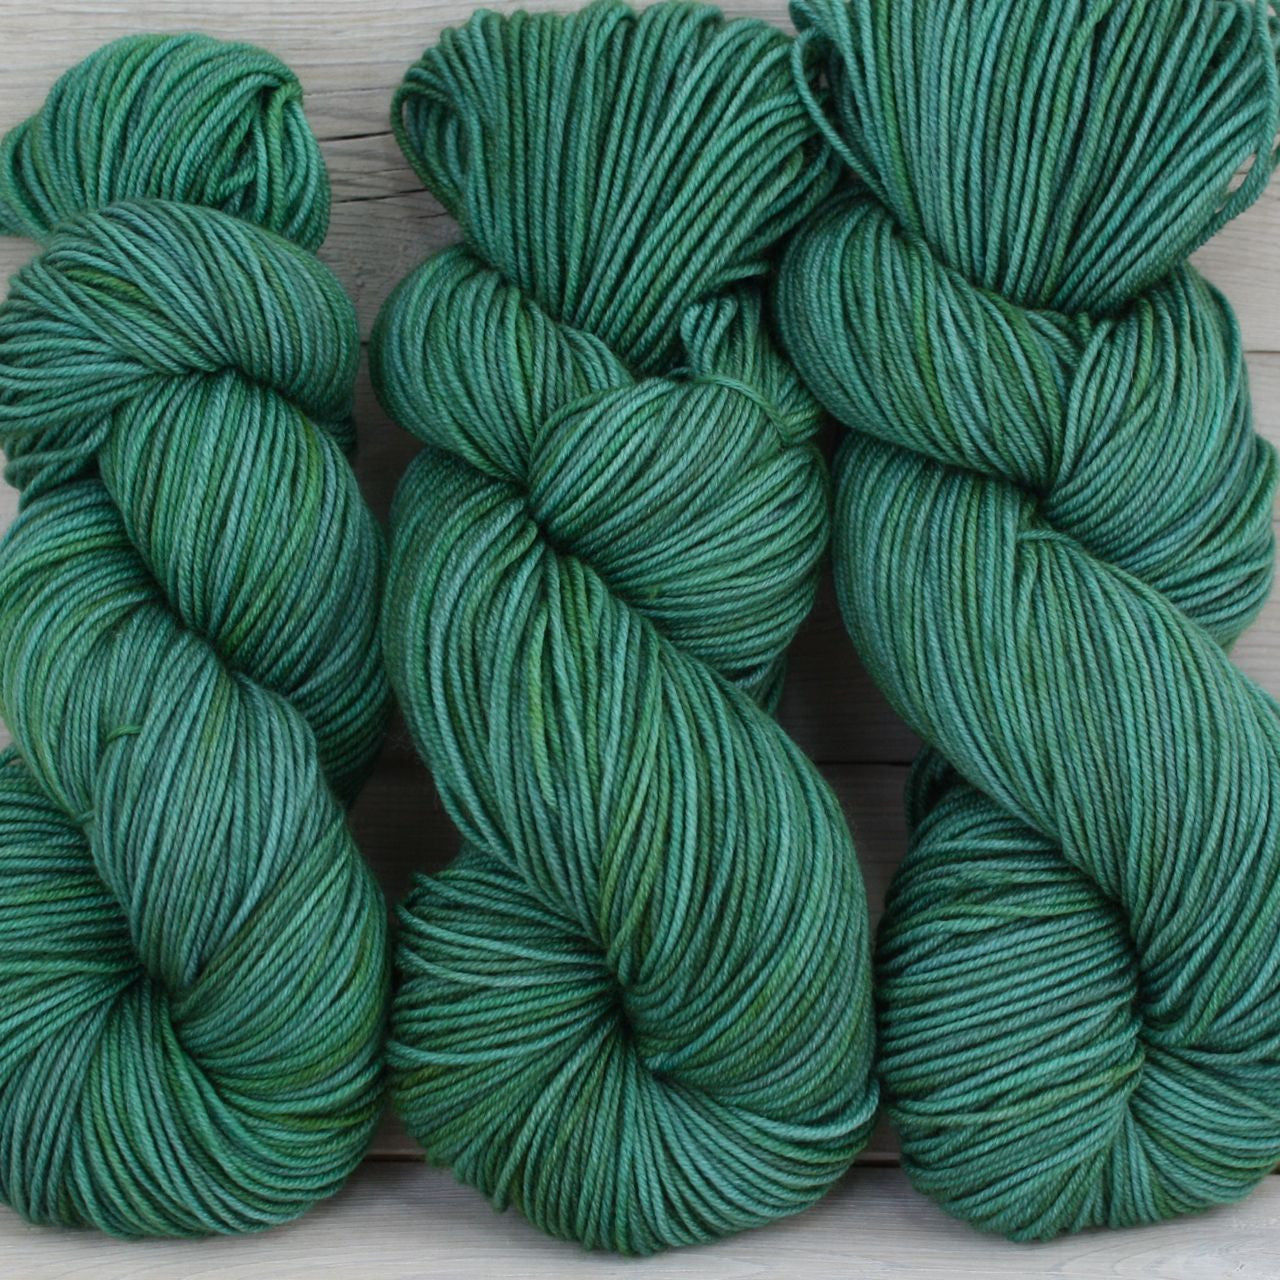 Aspen Sport Yarn | Colorway: Viridian